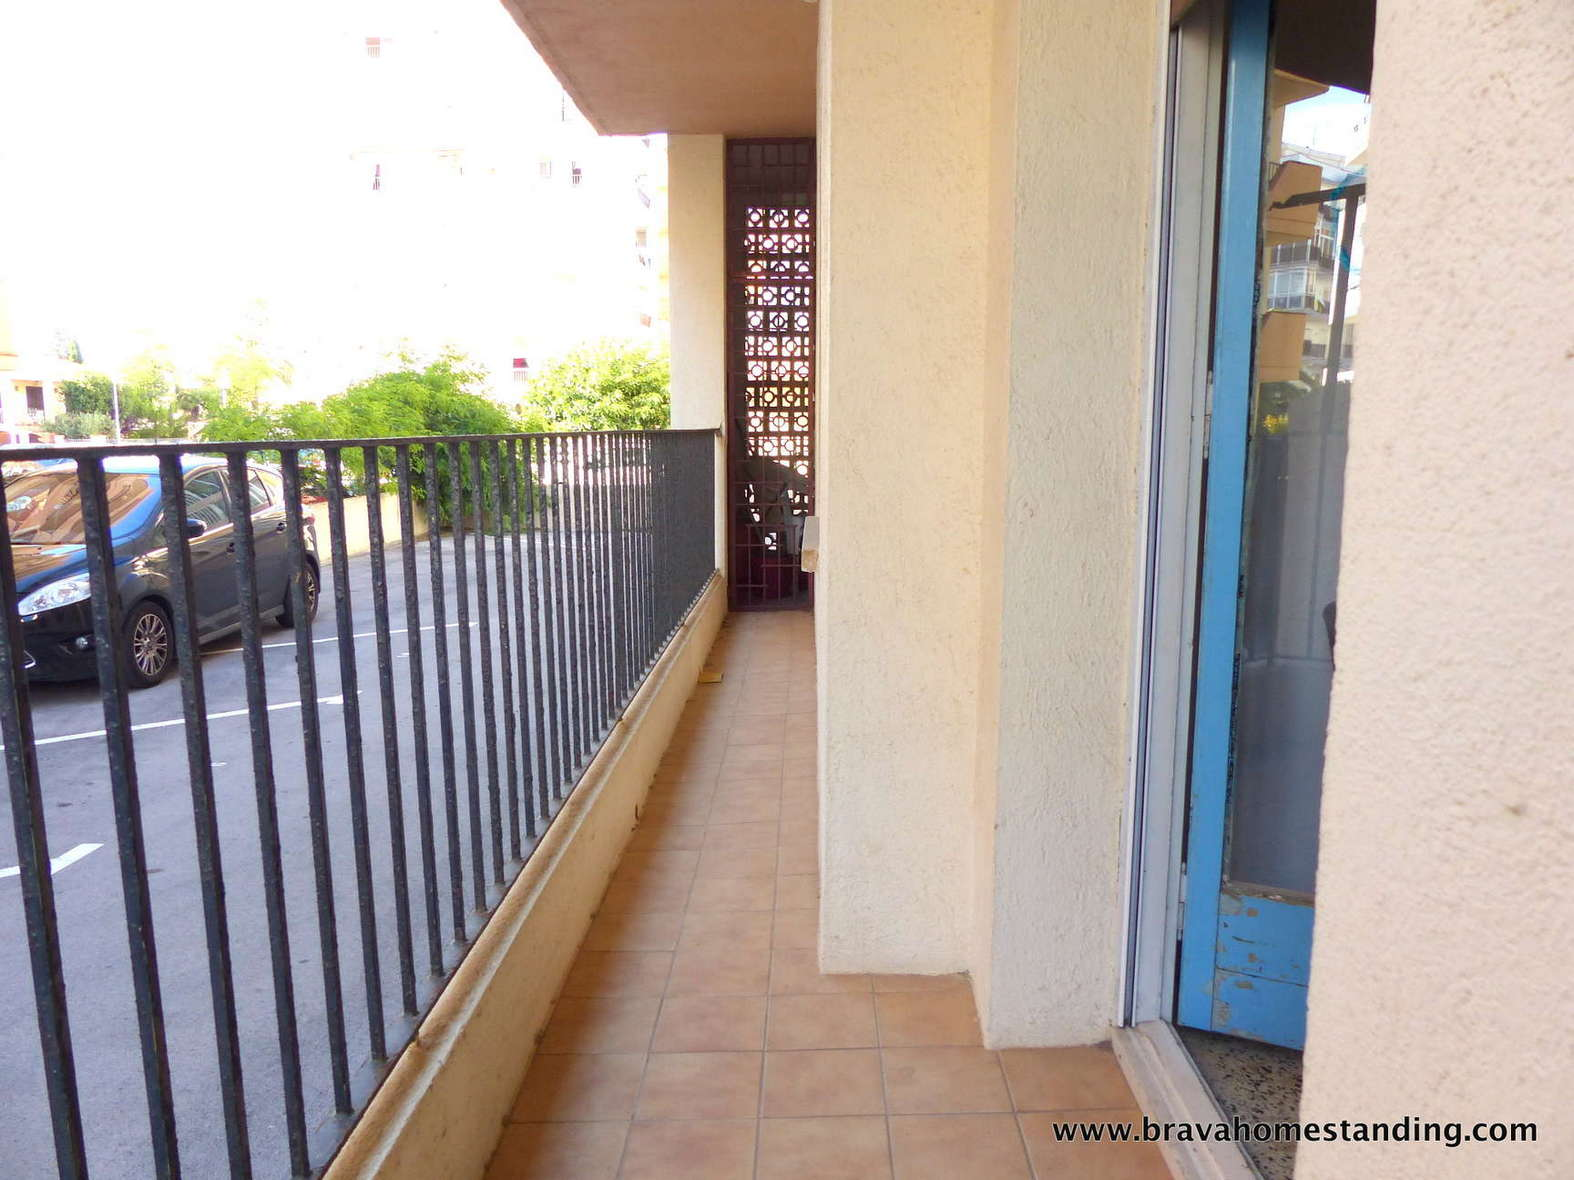 Apartment to renovate in second line of sea, for sale in Rosas - Santa Margarita